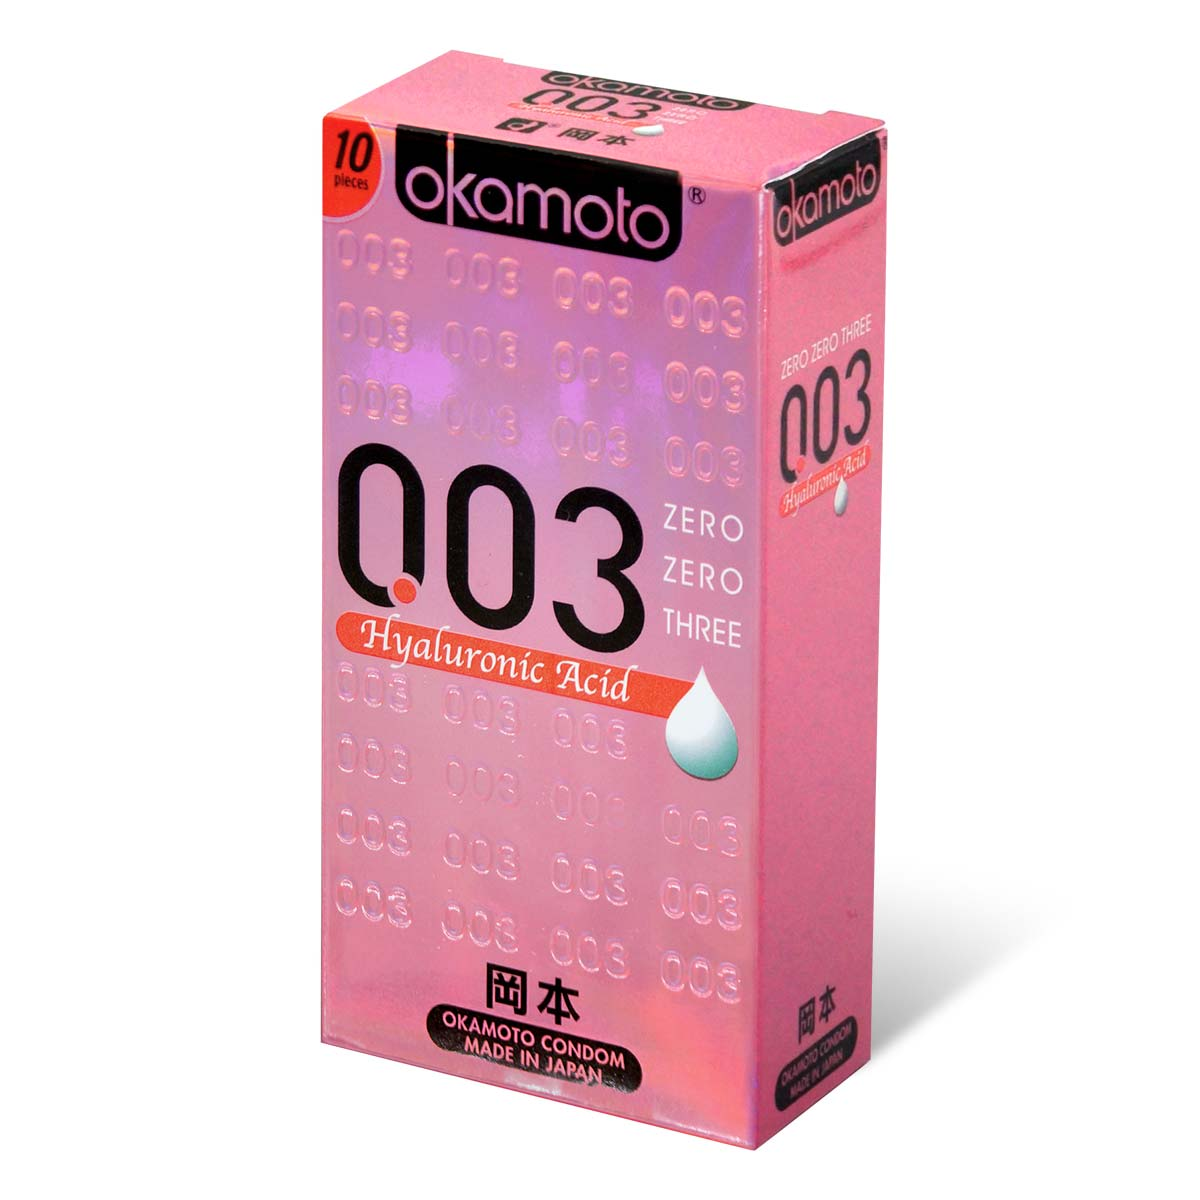 Okamoto 0.03 Hyaluronic acid 10's Pack Latex Condom